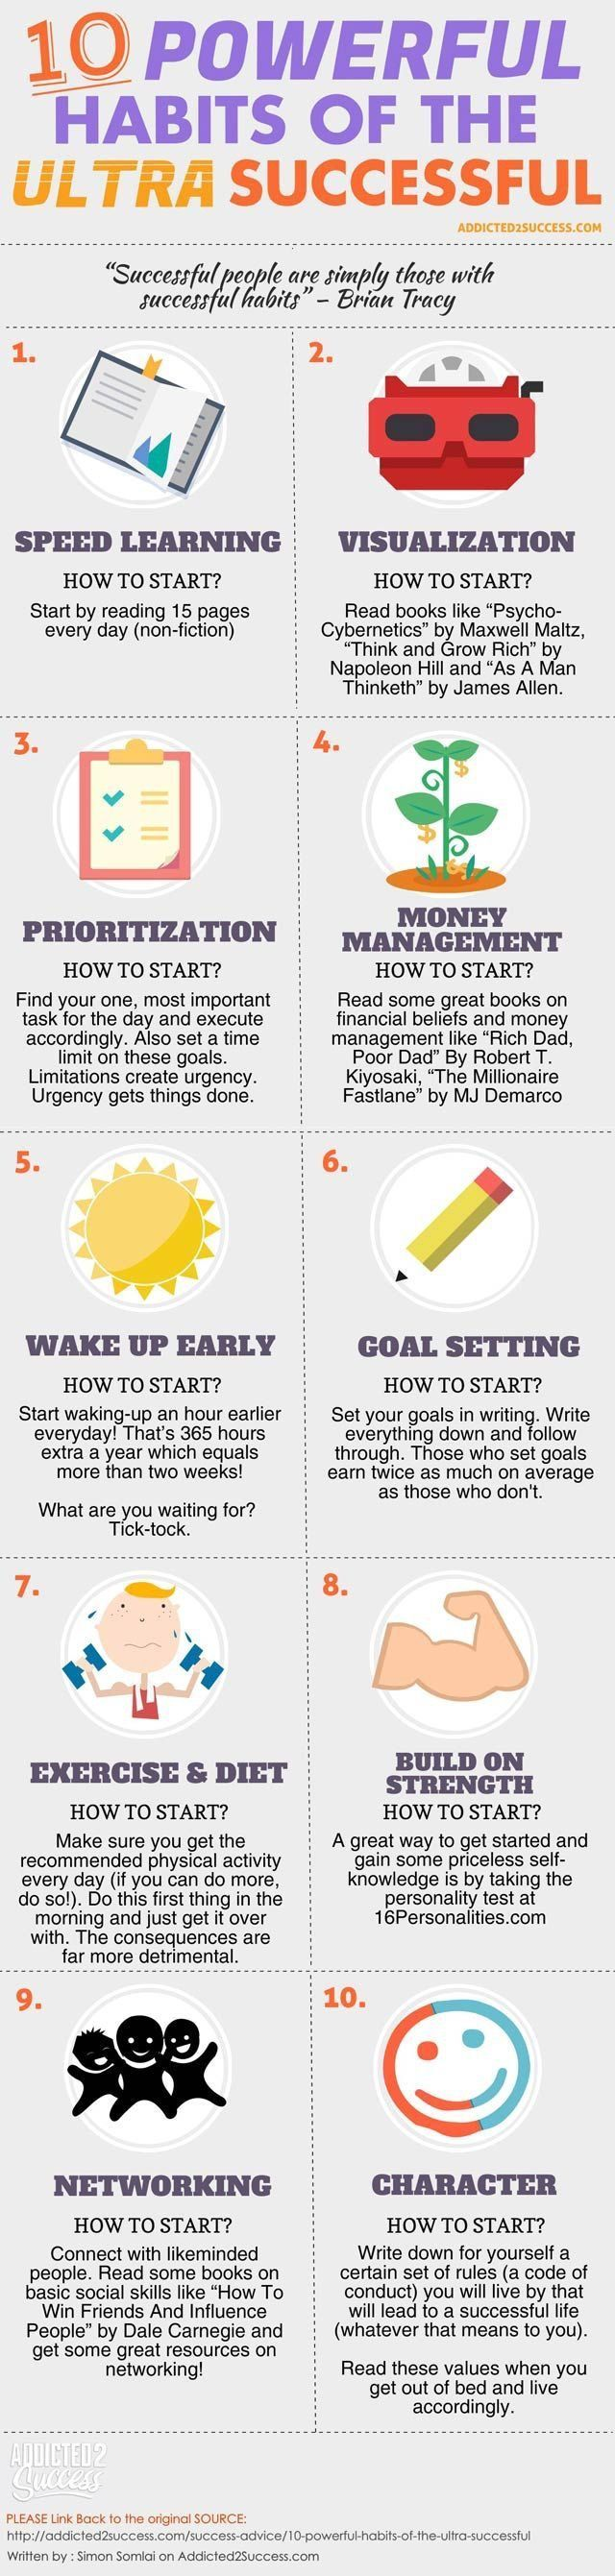 10 Powerful Habits of the Ultra Successful #FollowThedrinkinGourd  #SmallBusiness